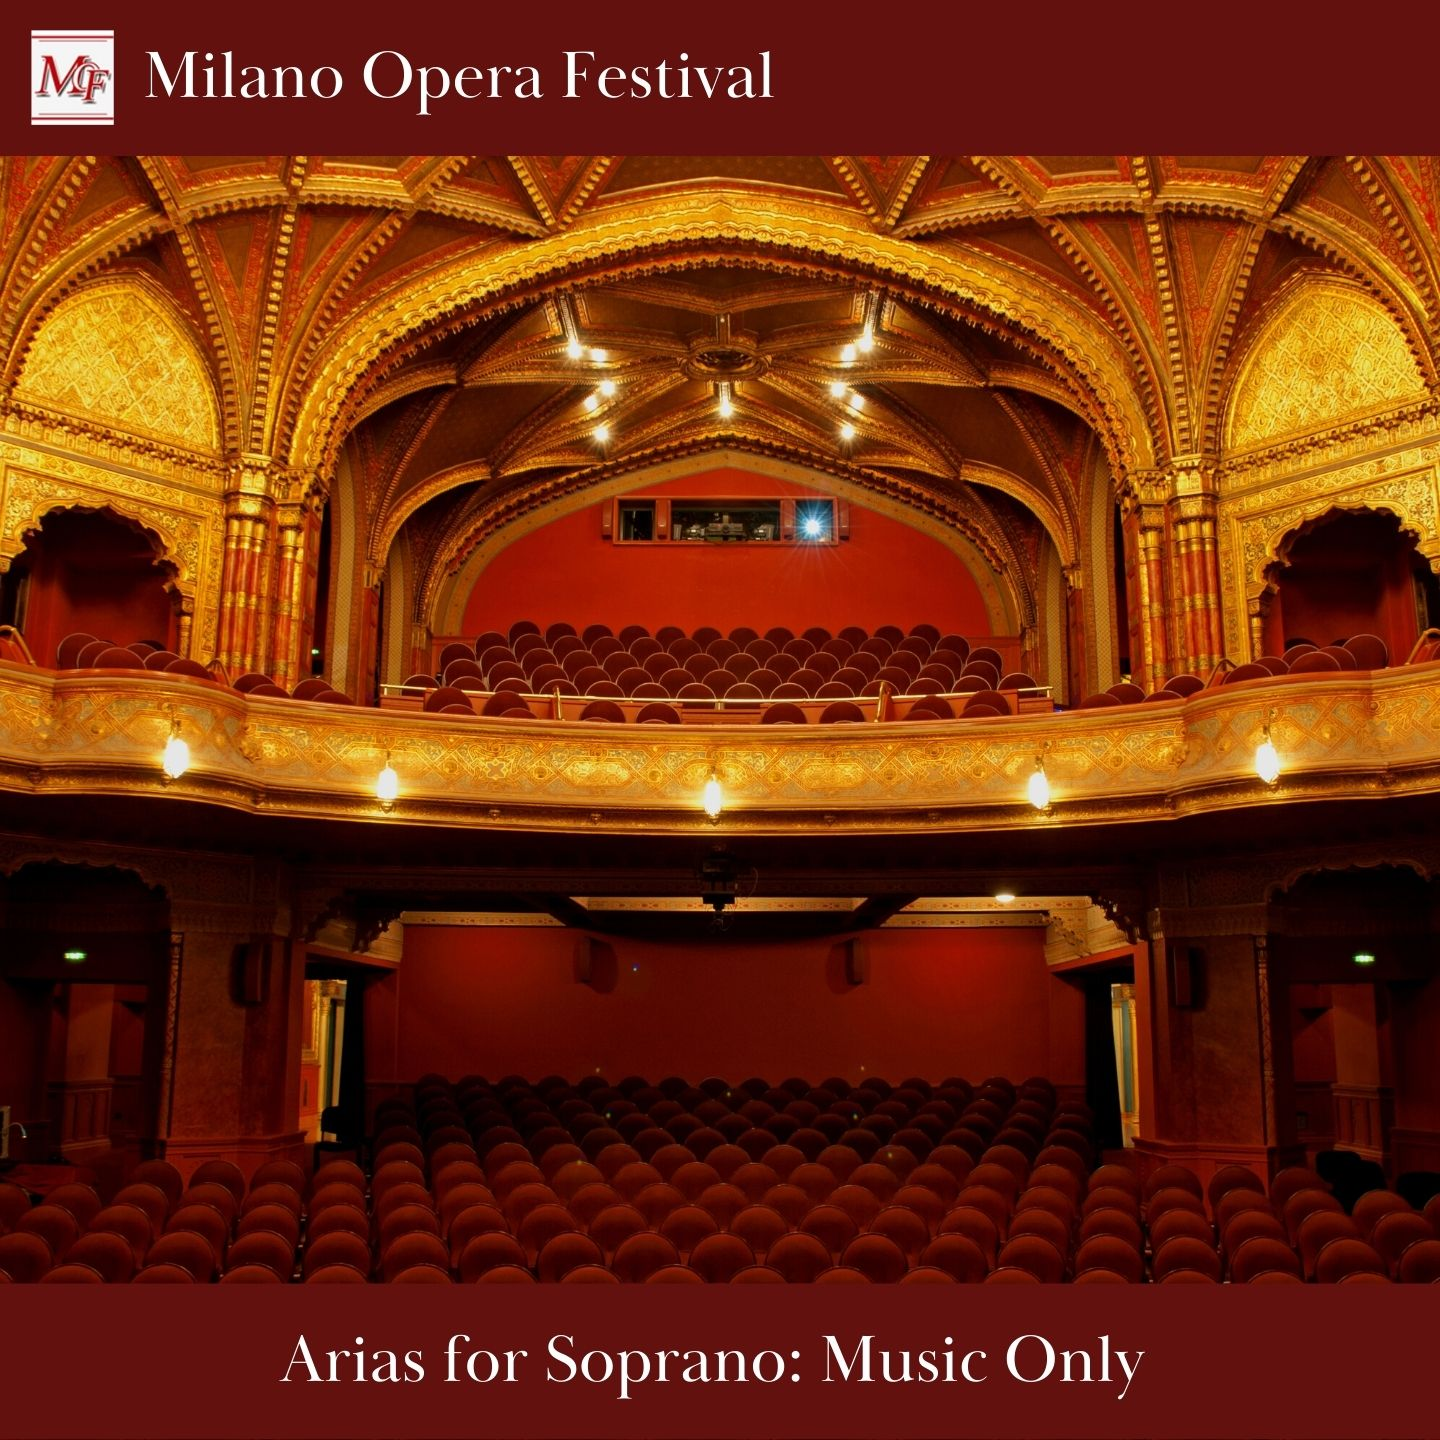 Arias for Soprano - Only Music + Video Karaoke Tutorial